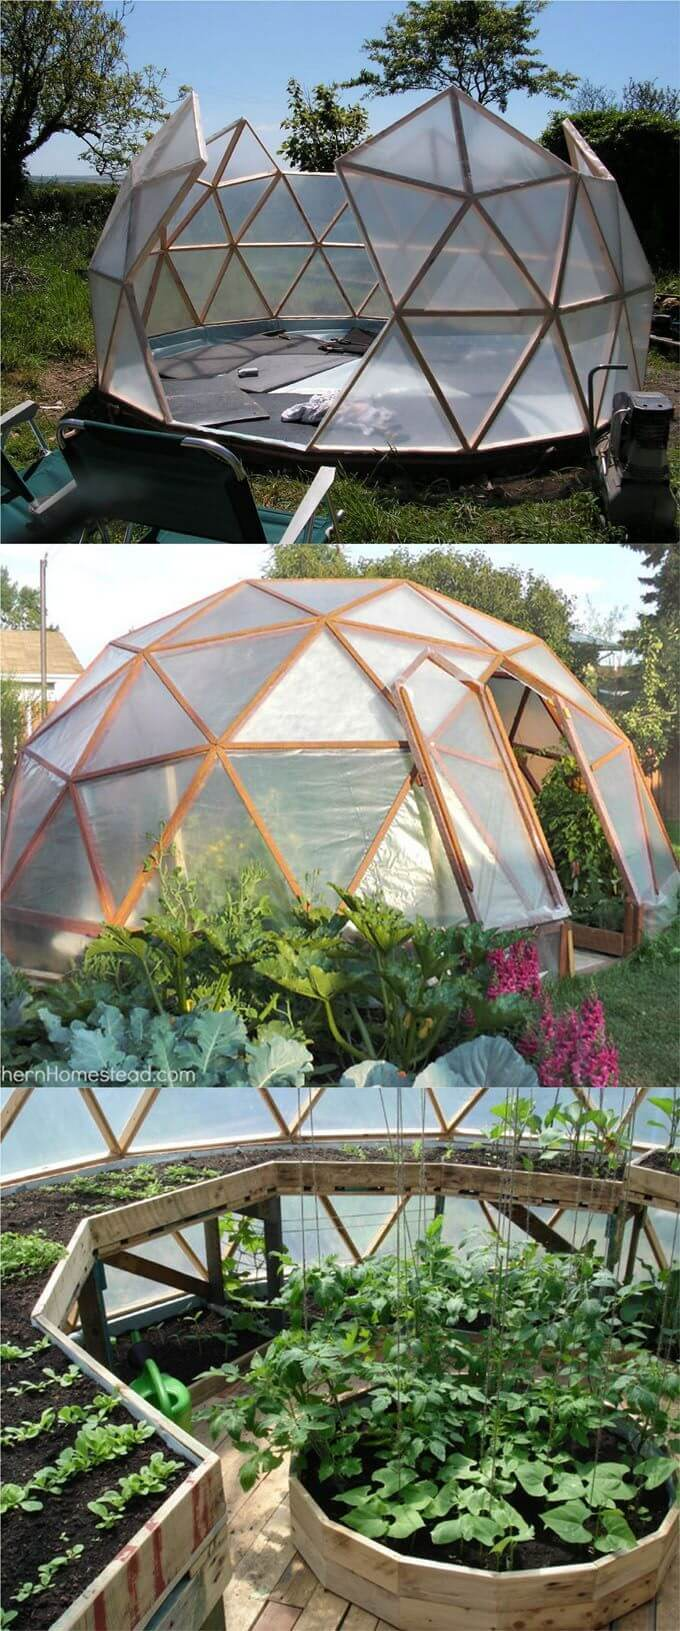 An Igloo-Inspired Walk-in Garden Green House | Build a beautiful outdoor greenhouse | Creative Greenhouse DIY plans